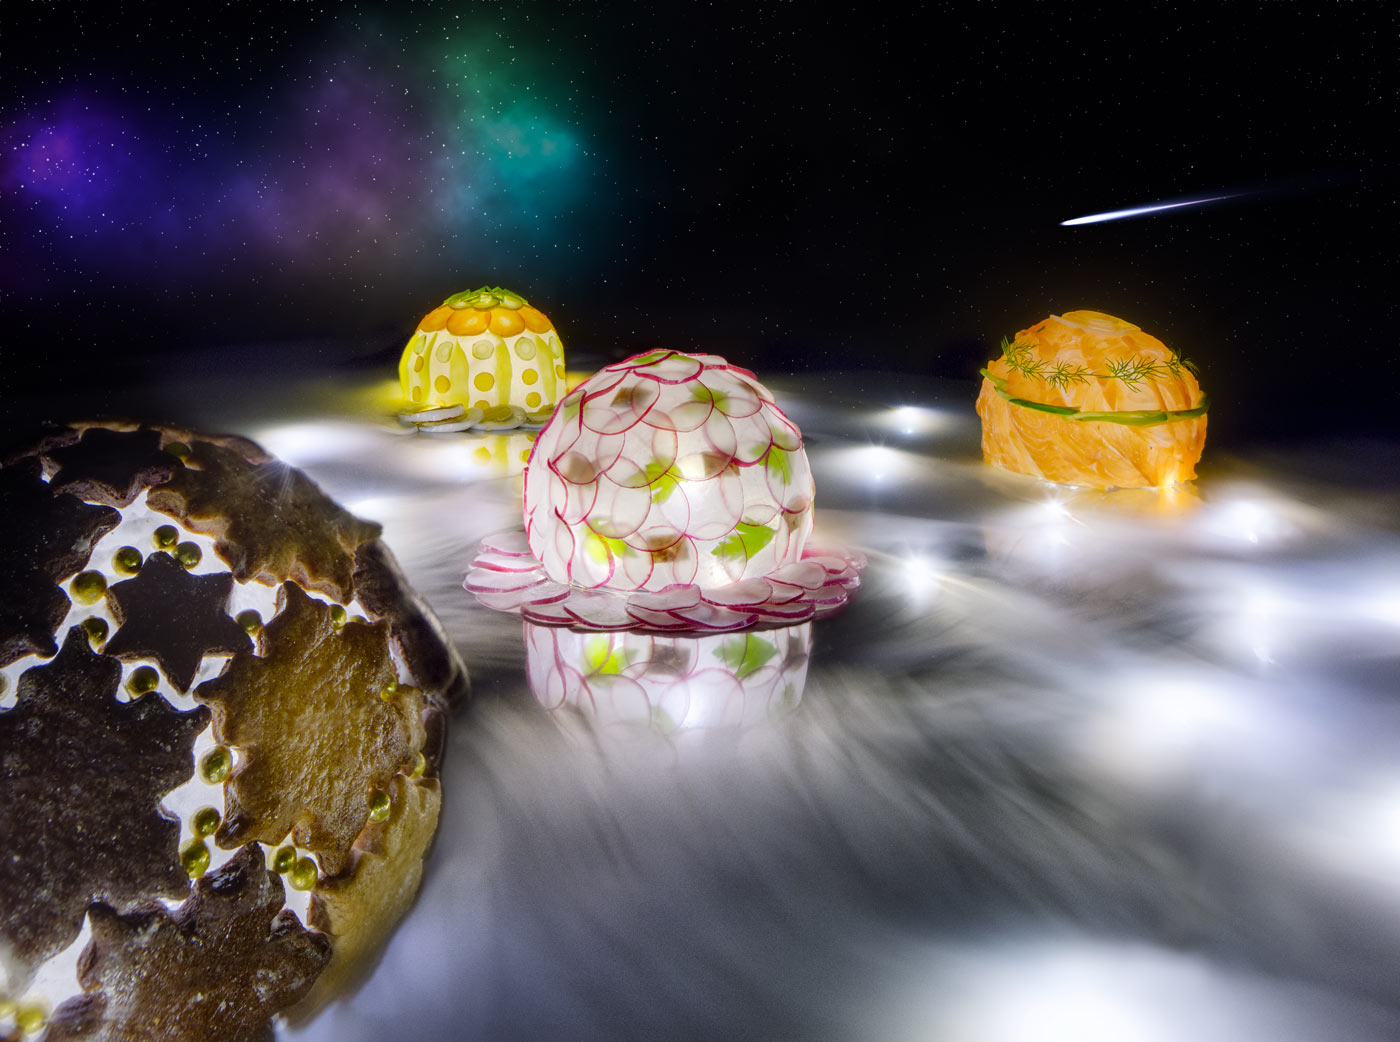 Landscape made out of food, spheares of cookies, raddish salad, salmon and potato salad floating through outer space